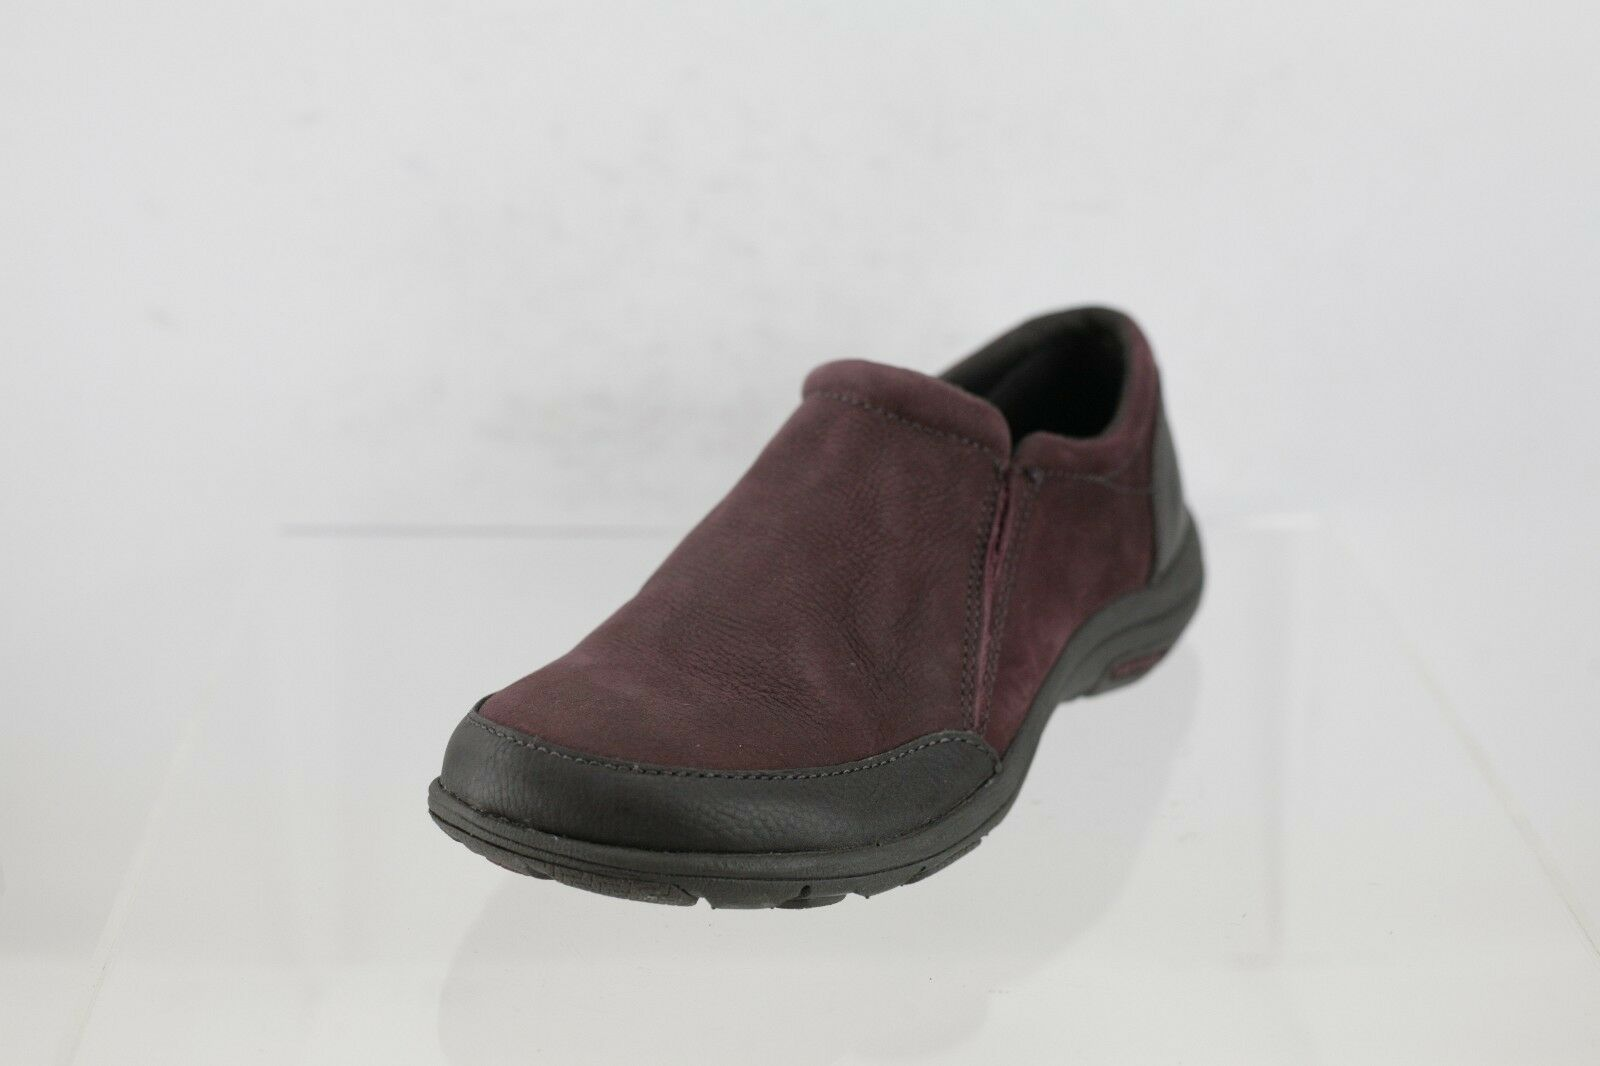 Merrell Dassie Deep Red Leather Slip-On Women's Shoes Size 5 M NEW